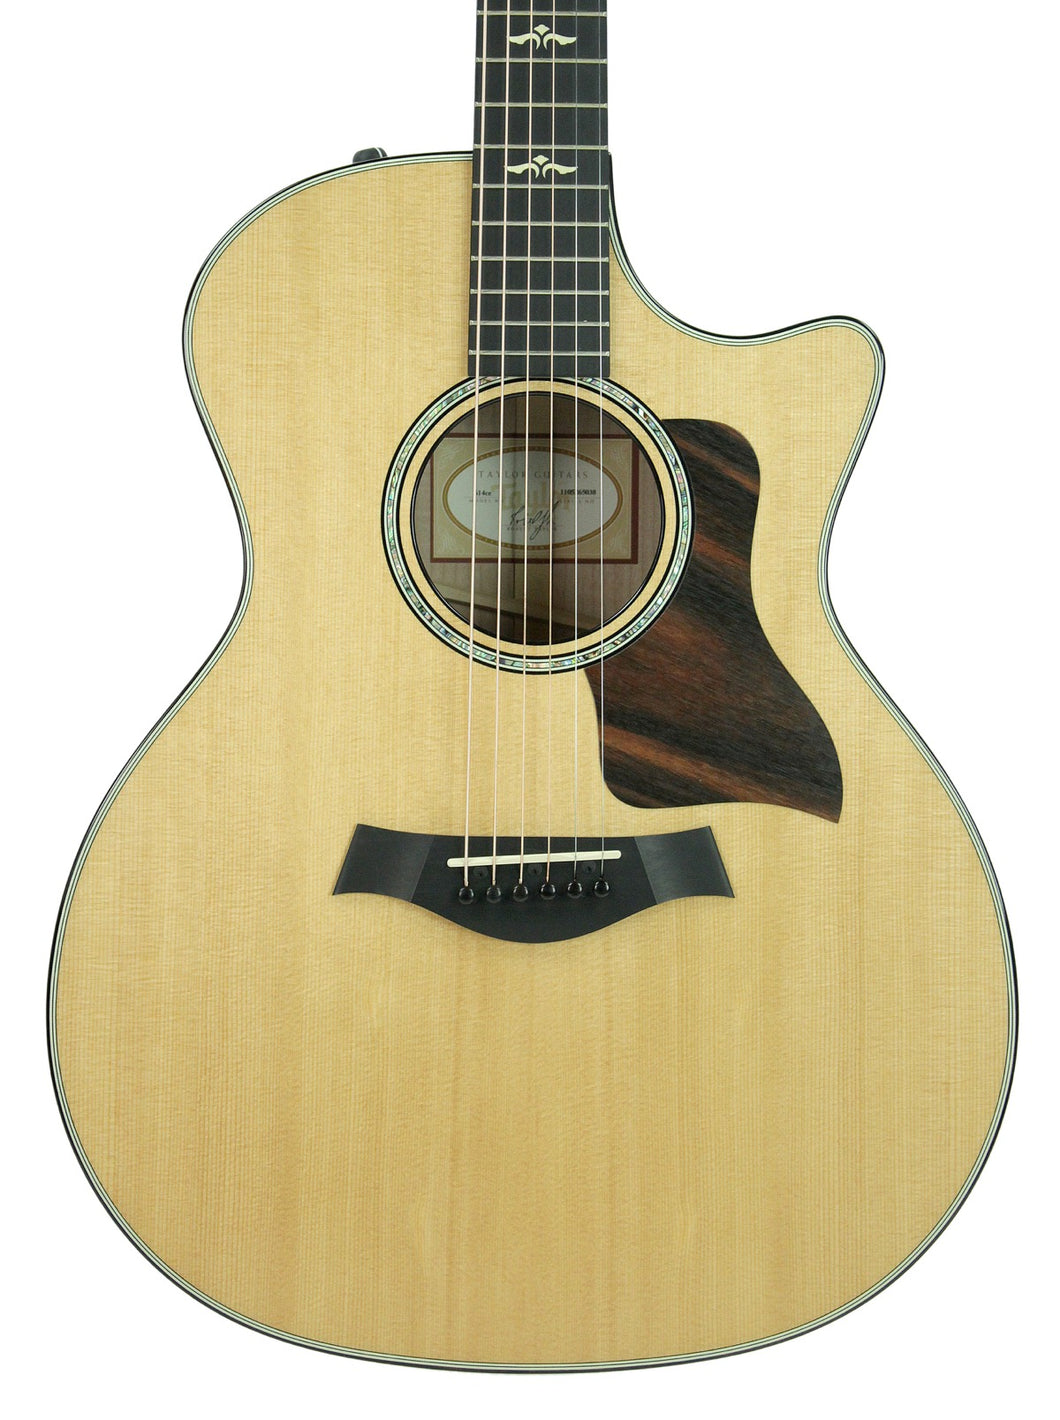 Taylor 614ce Acoustic Electric Guitar SN# 1105265038